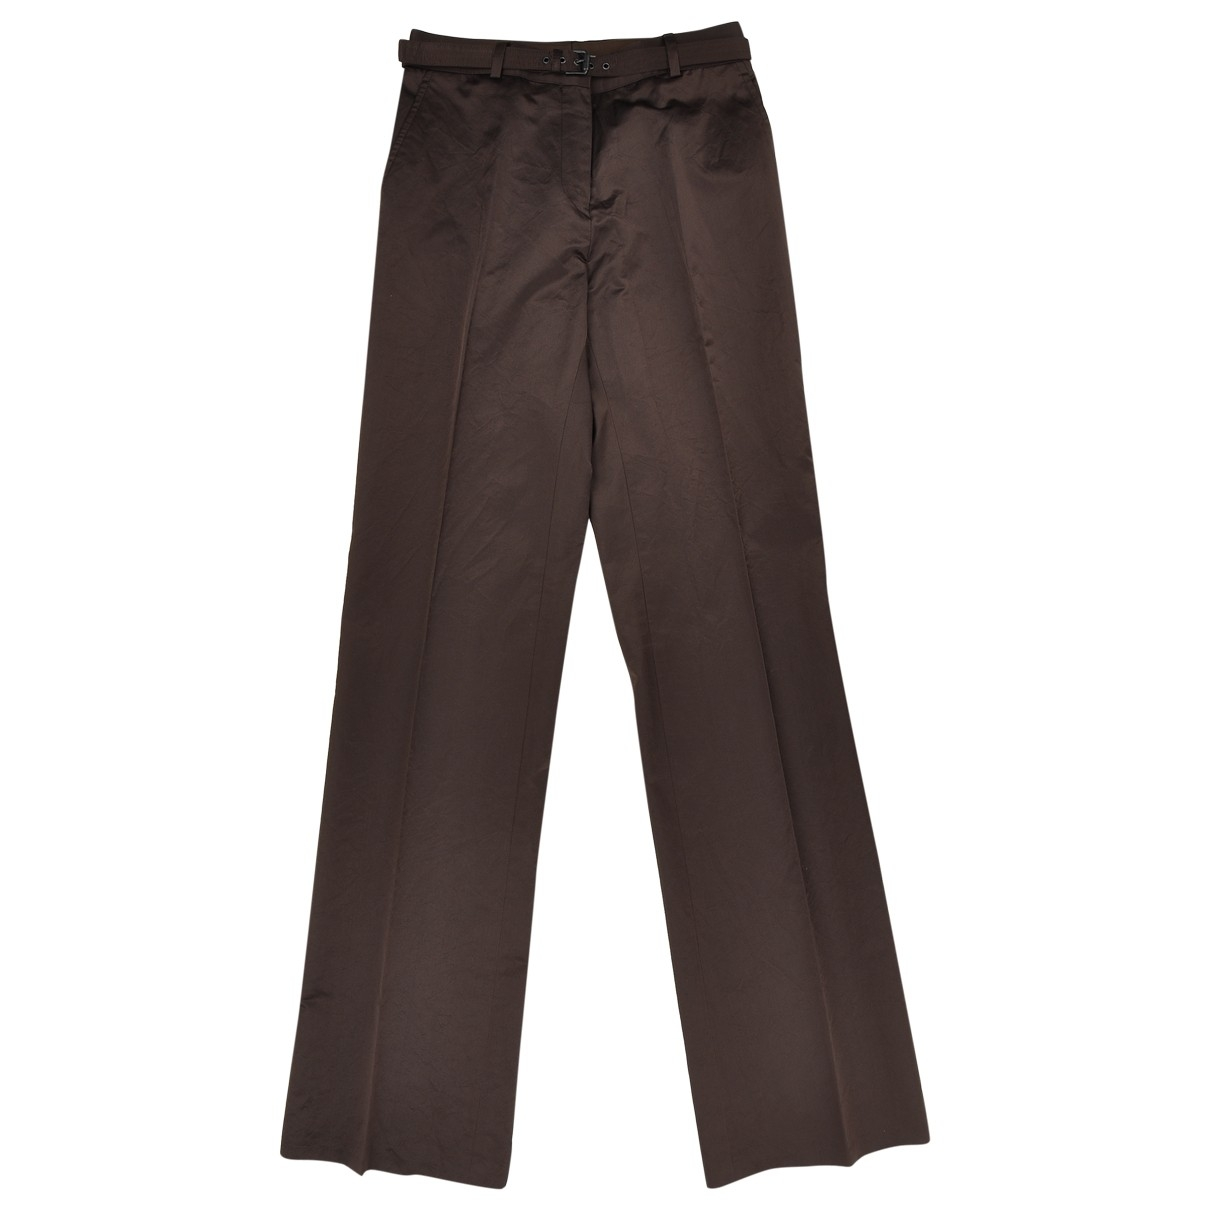 Bottega Veneta \N Brown Trousers for Women 38 IT